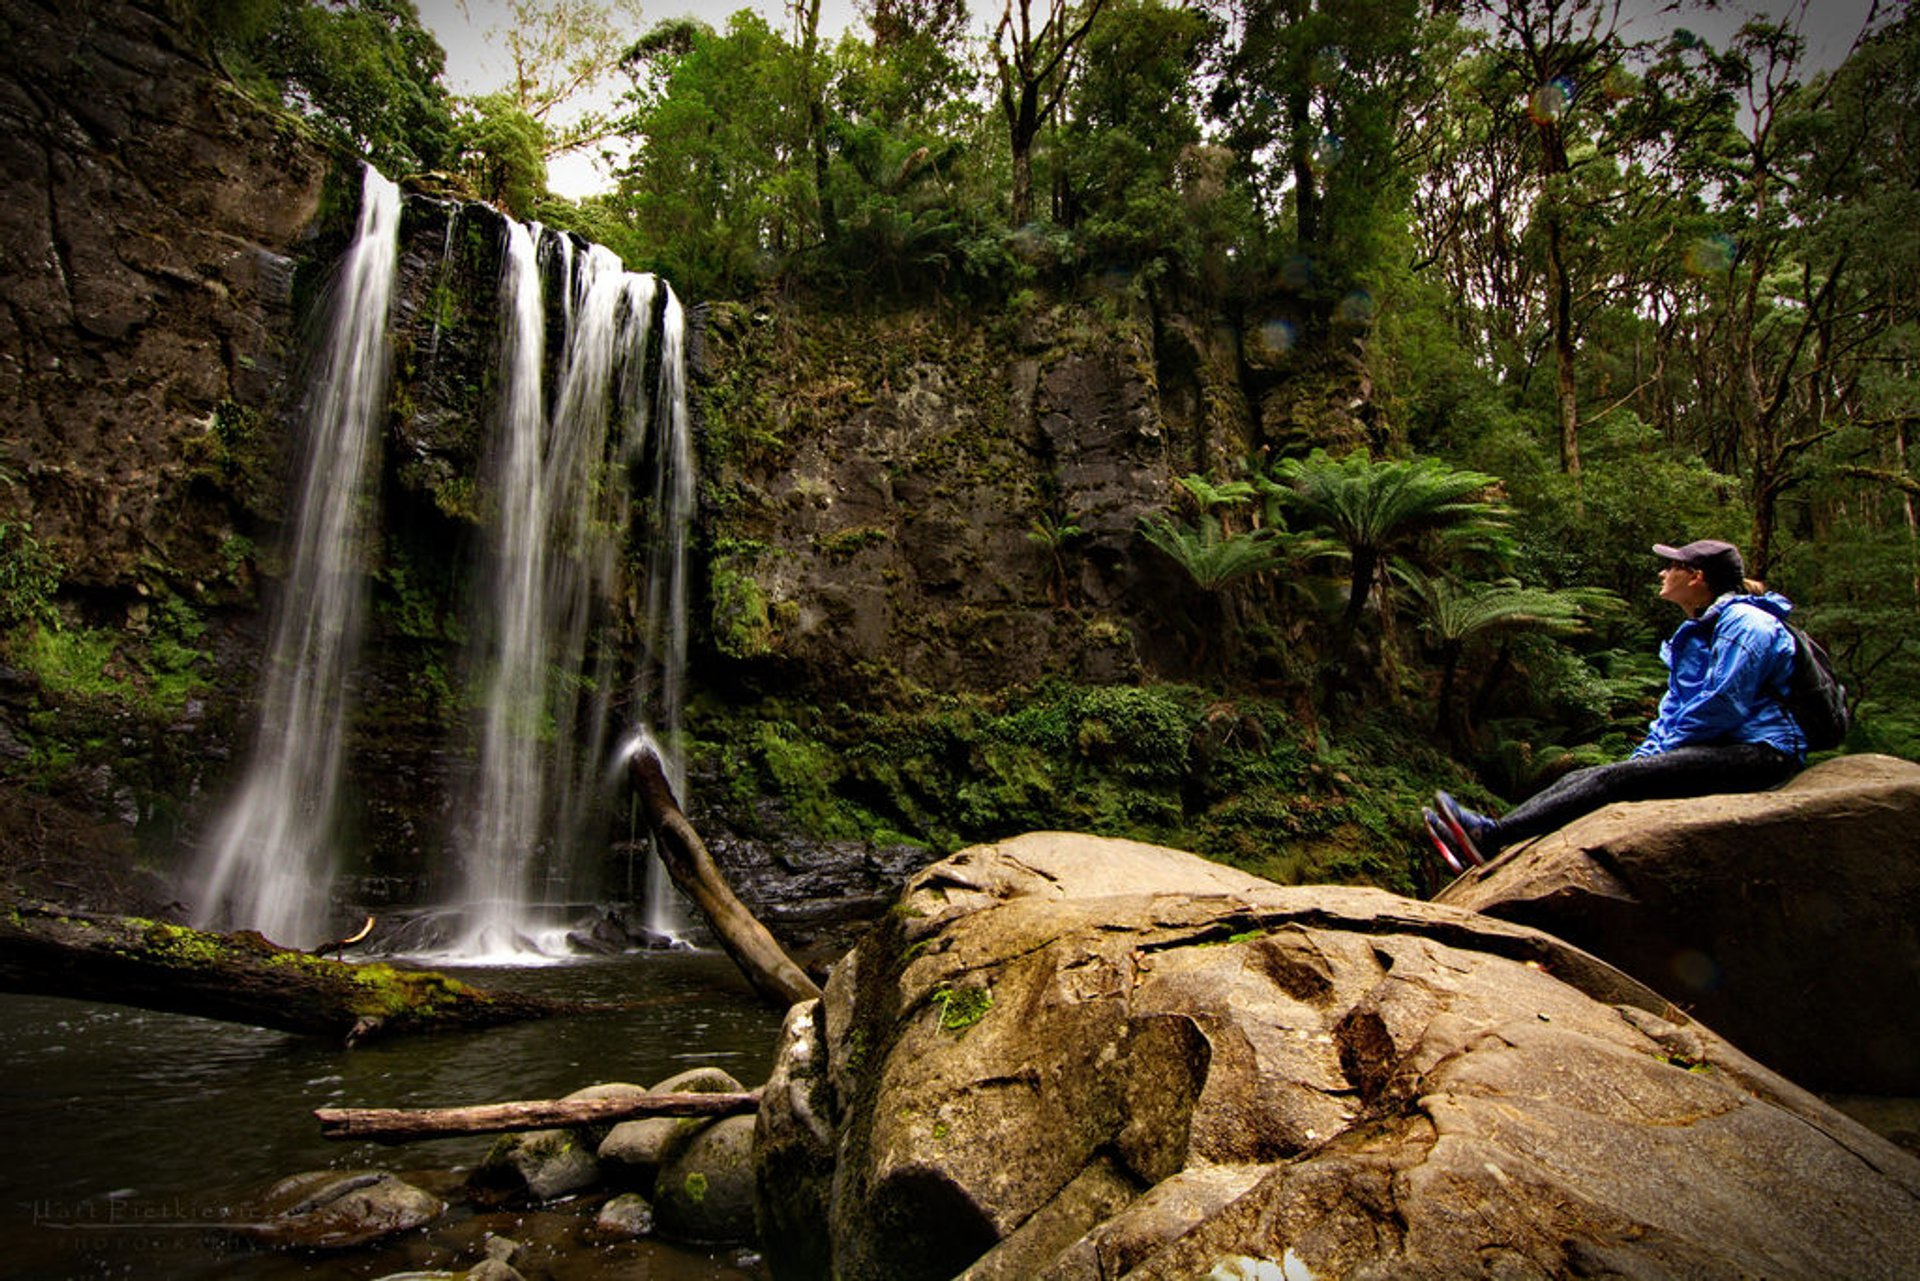 Waterfalls near Melbourne in Melbourne 2020 - Best Time